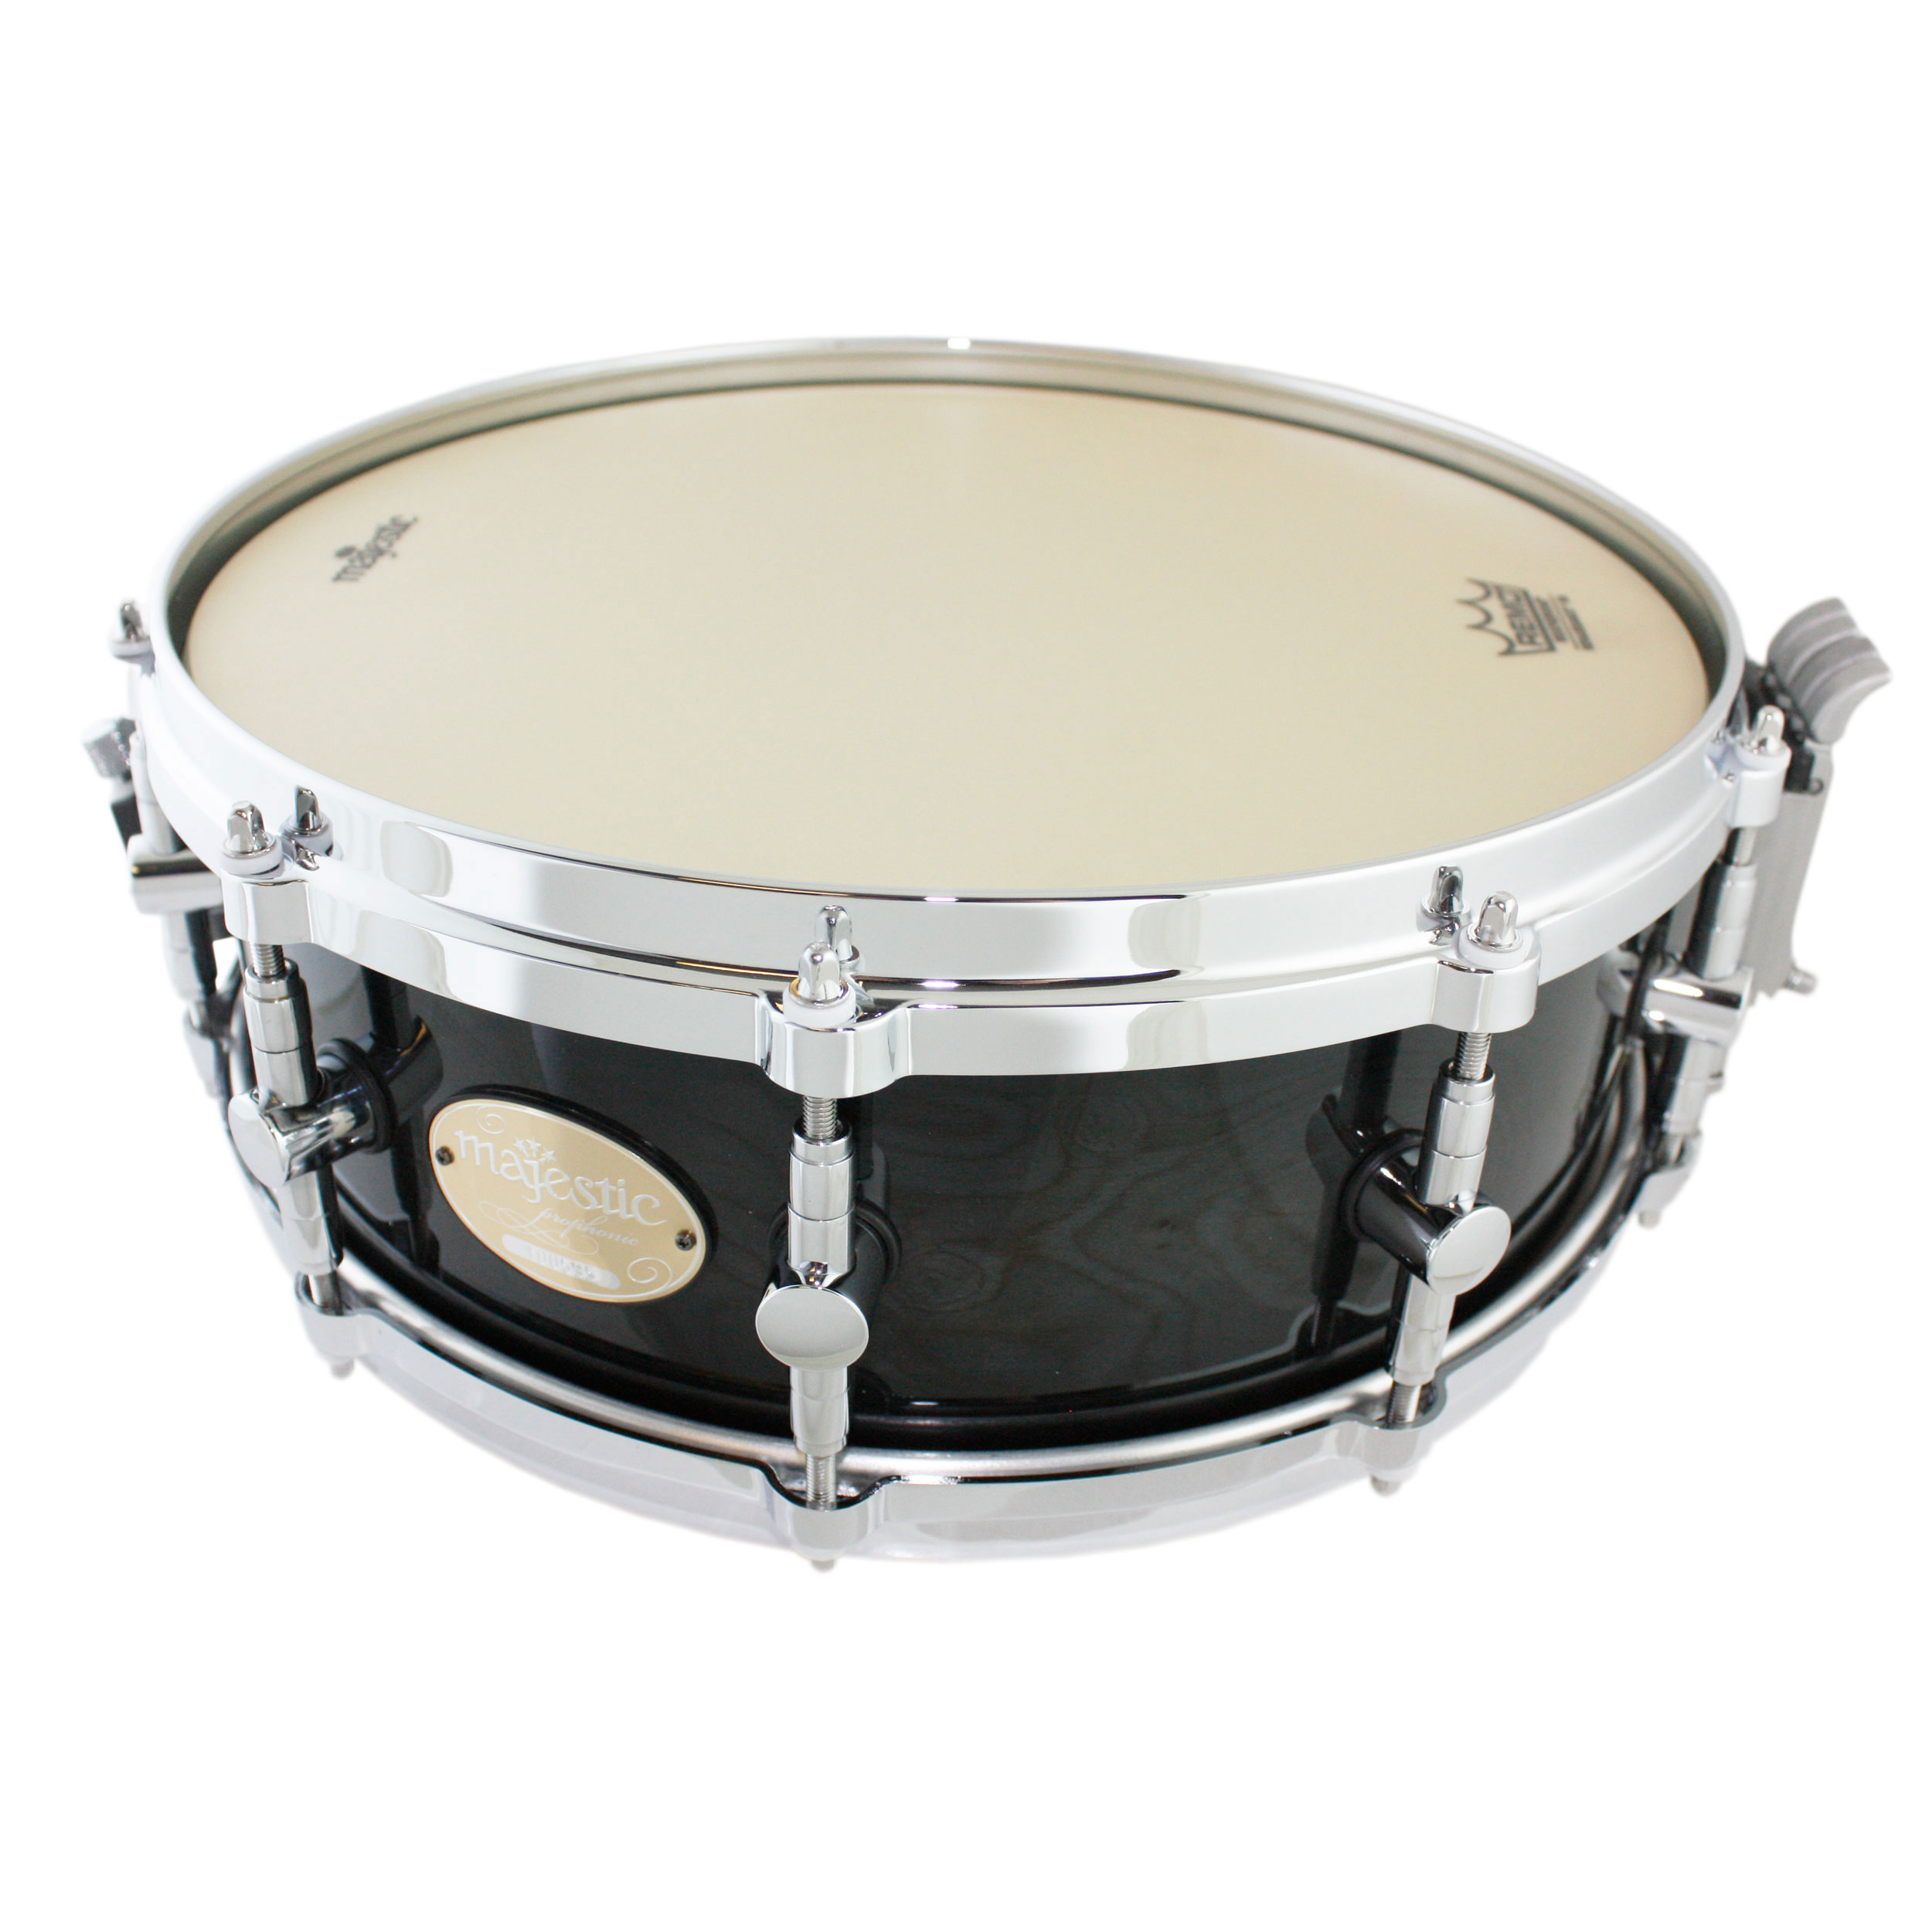 "Majestic 14"" x 6.5"" Prophonic Maple Concert Snare Drum"